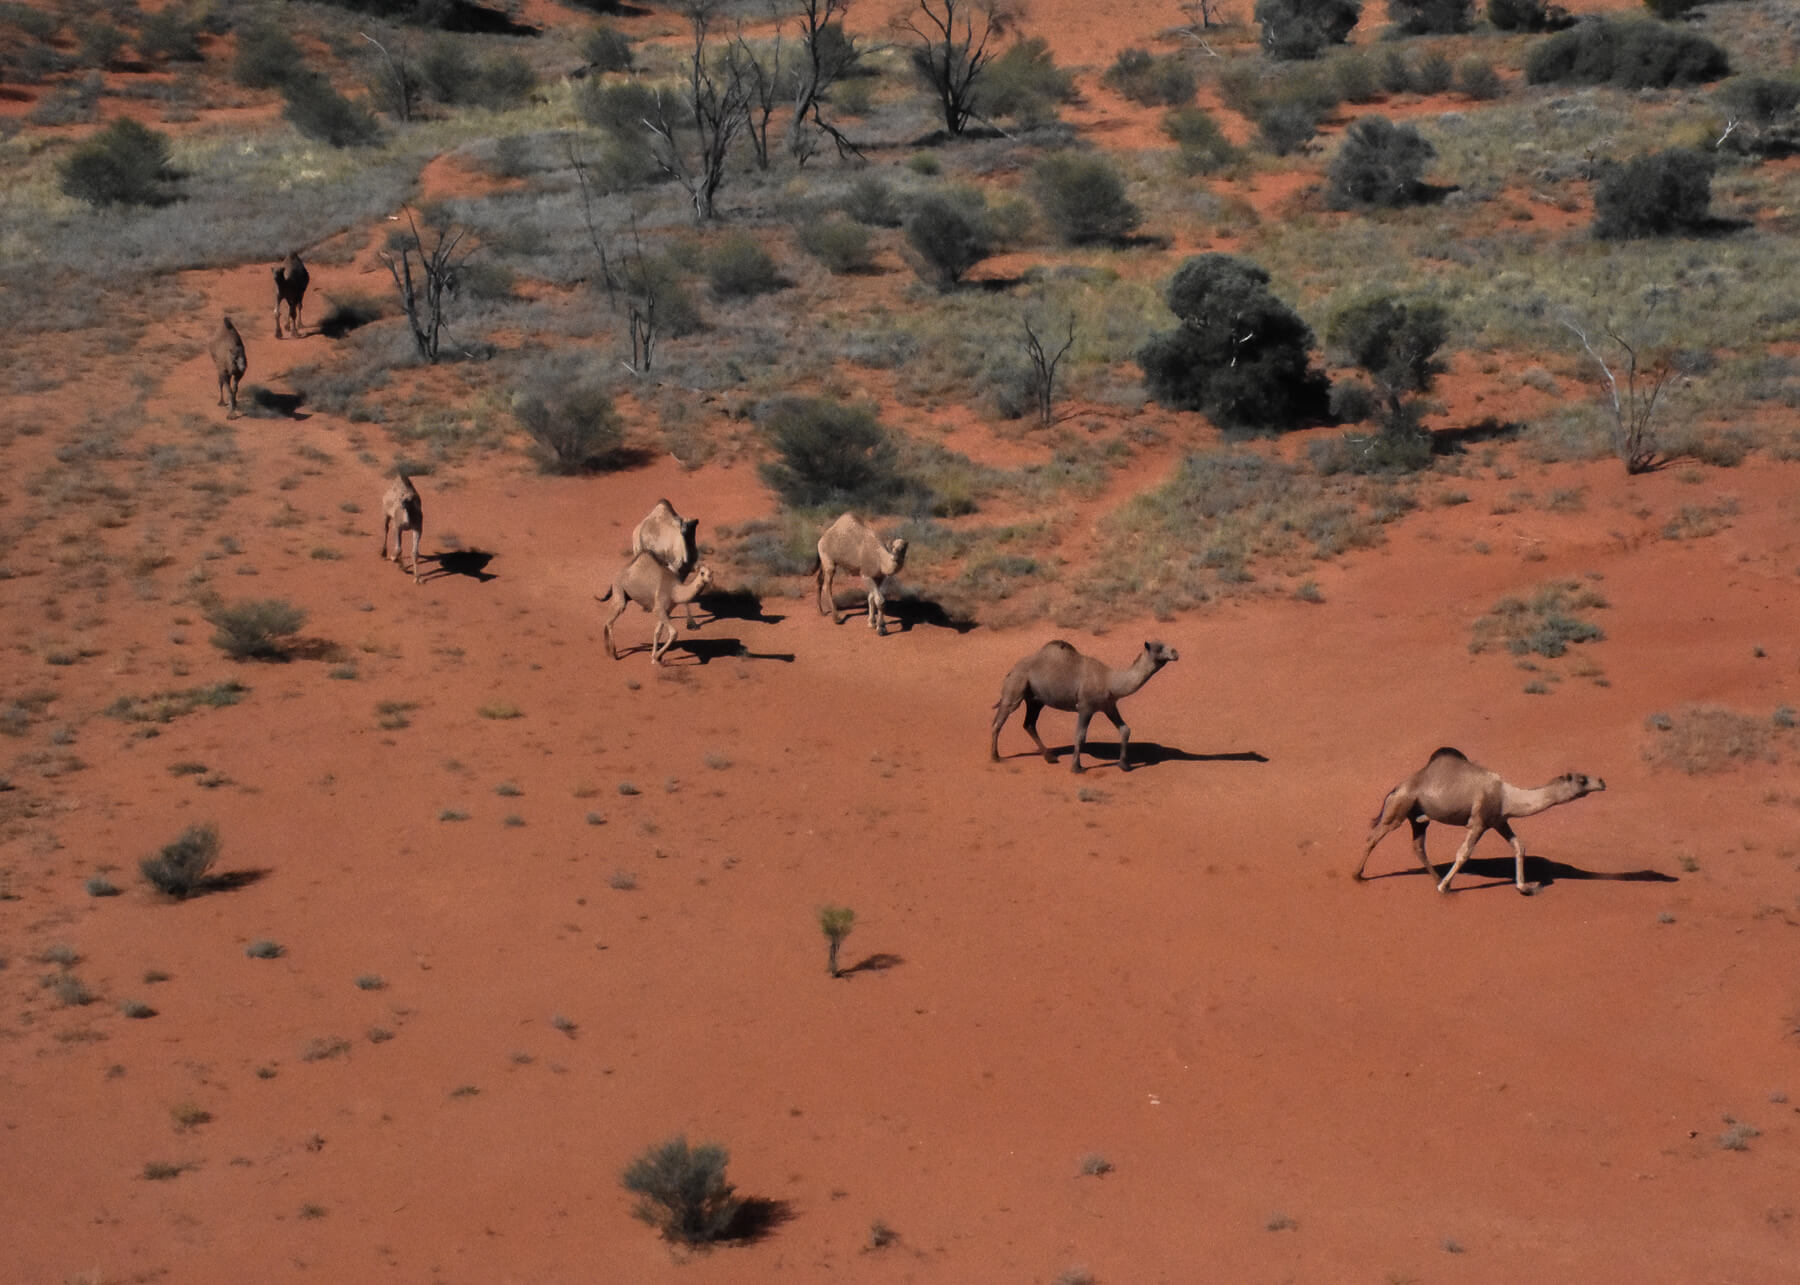 8 camels roaming through the red centre